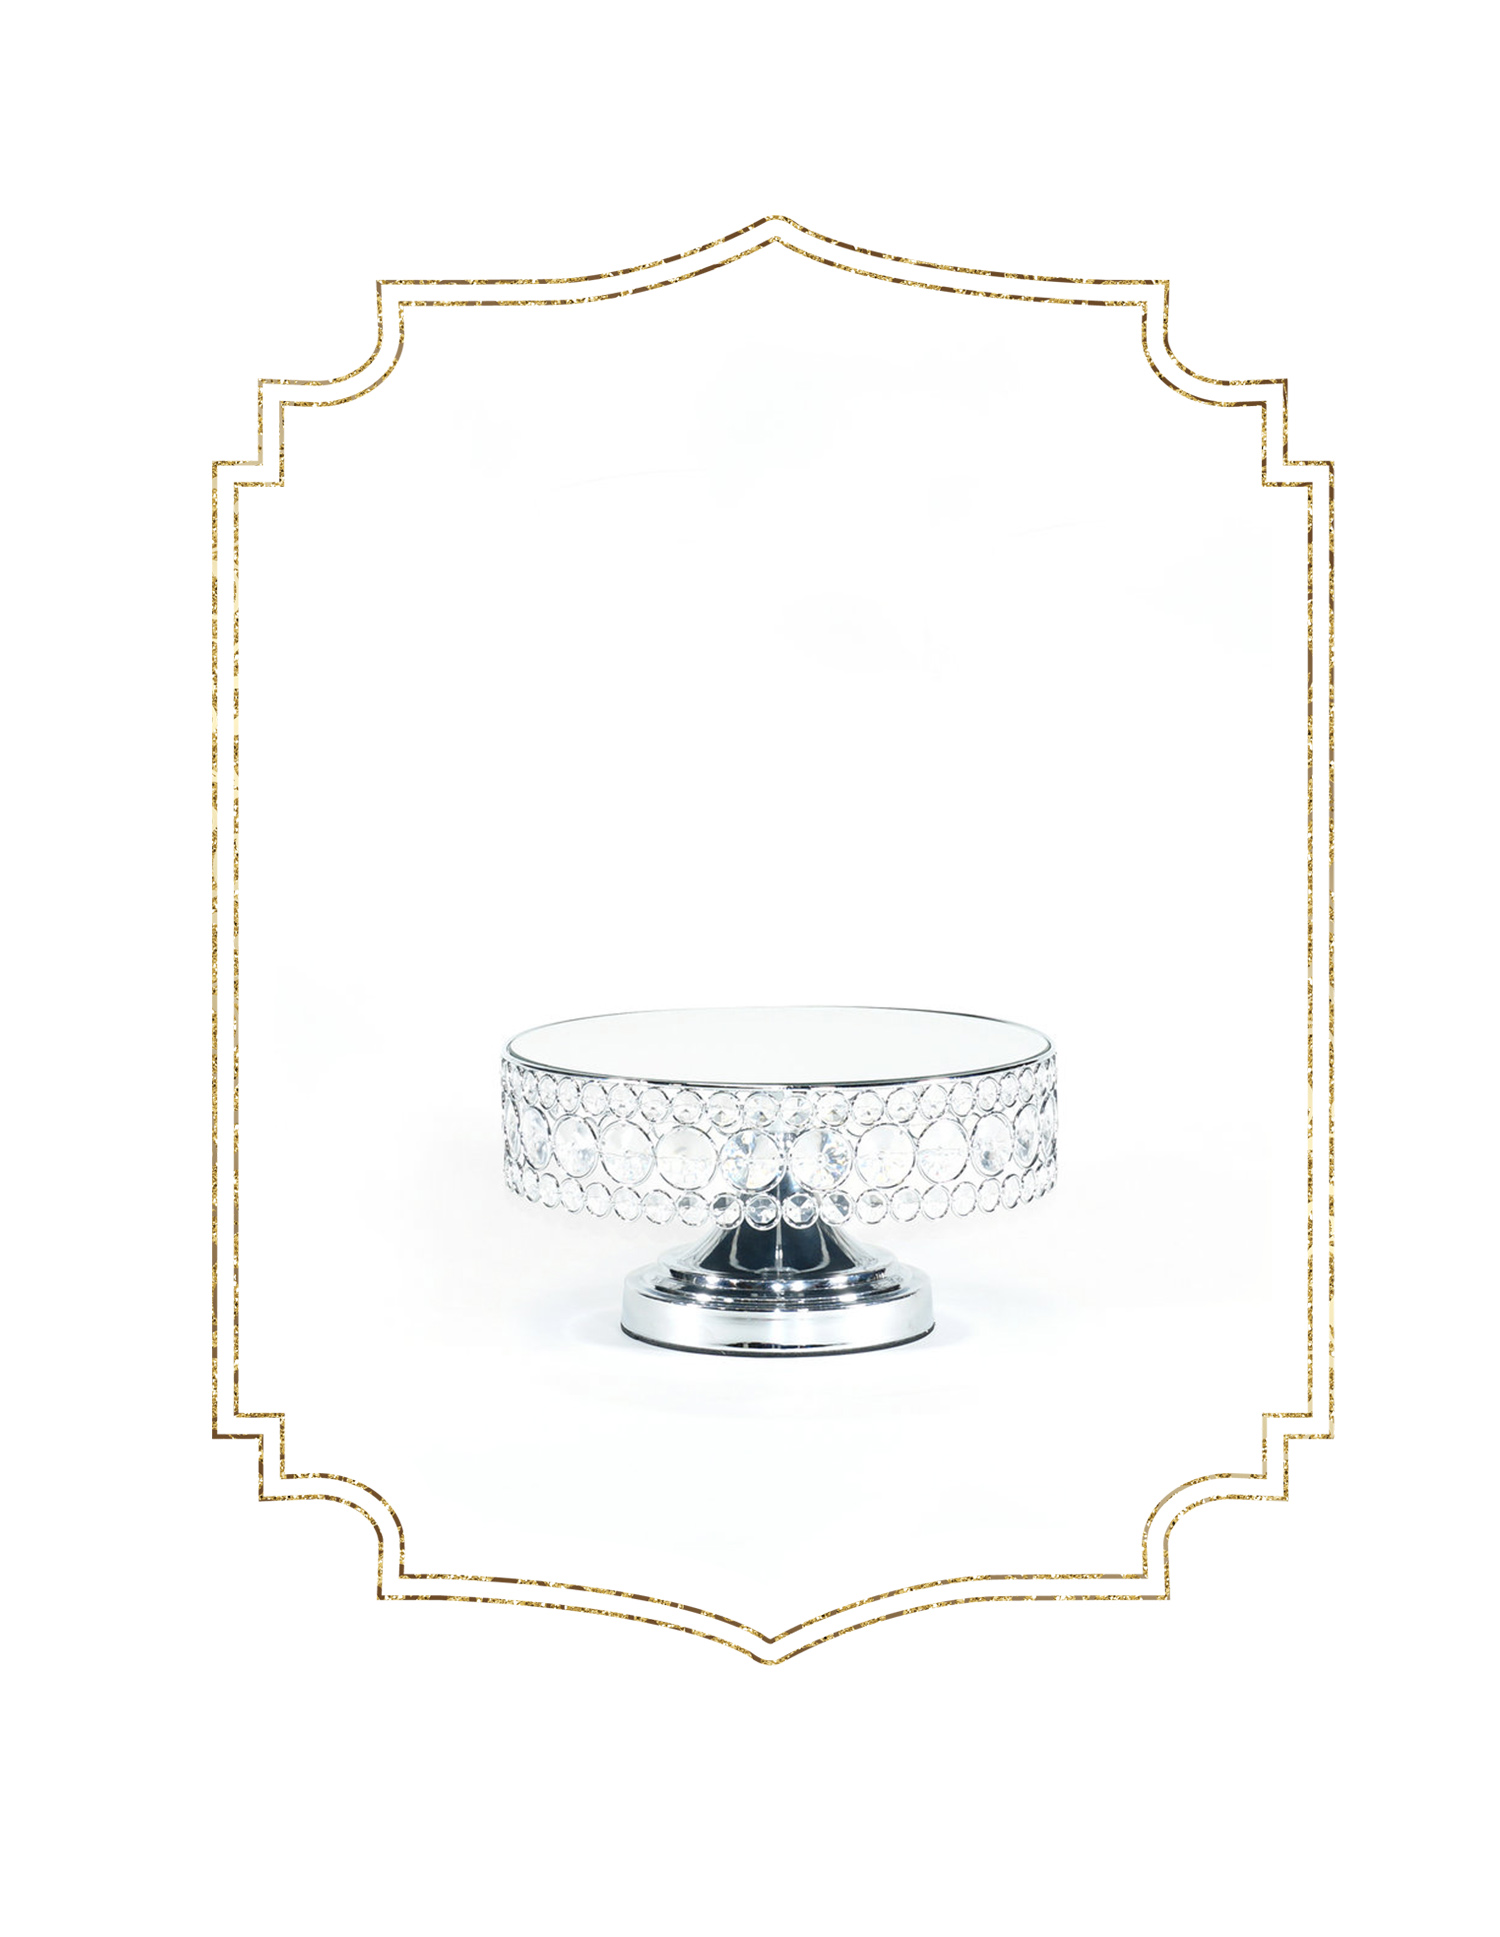 SHOP-preview shiny silver bling cake stand.jpg